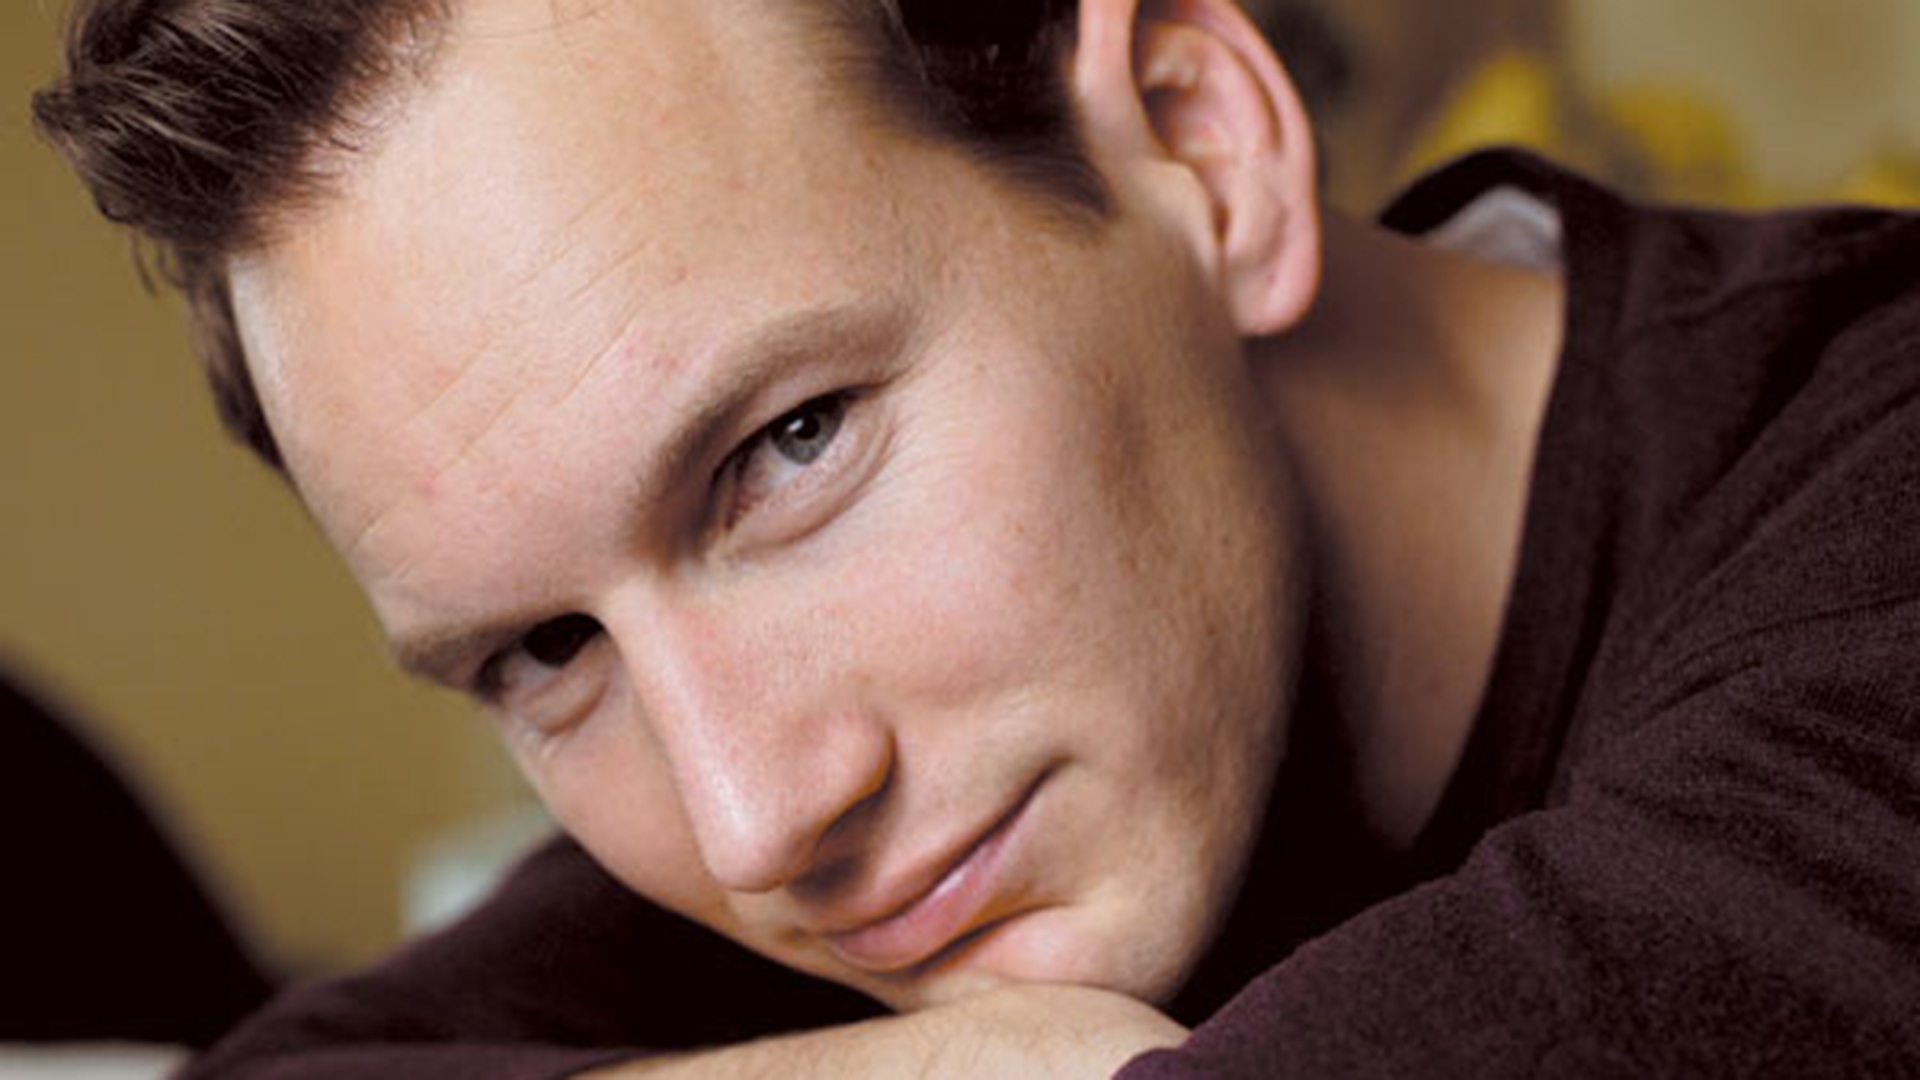 Hd Technology Wallpapers 1080p Patrick Wilson Wallpapers Hd Pictures Images High Quality